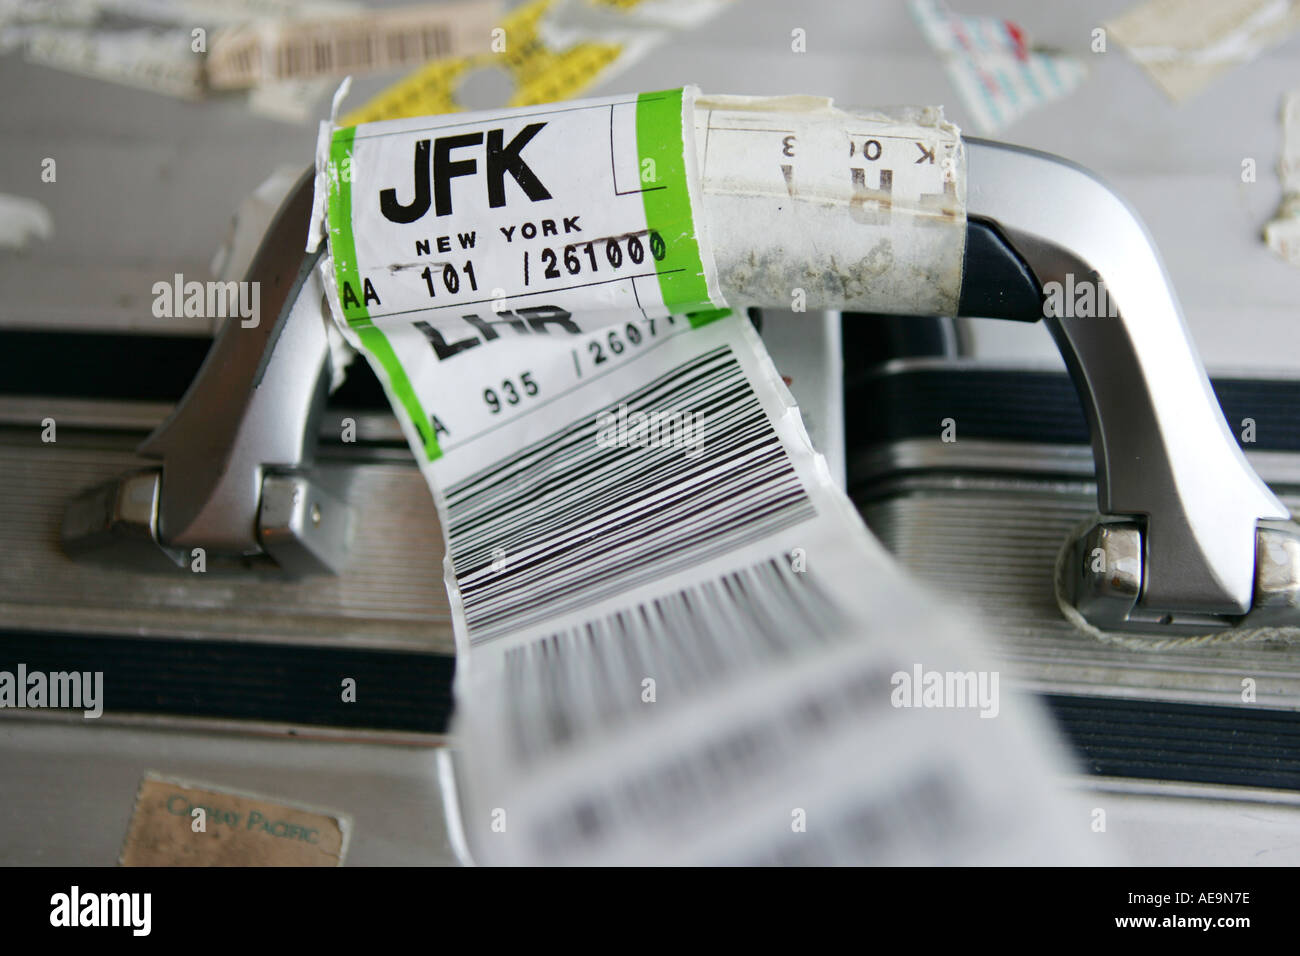 Suitecase Wit The Baggage Tag Of An Airline To Jfk Airport New York Stock Photo